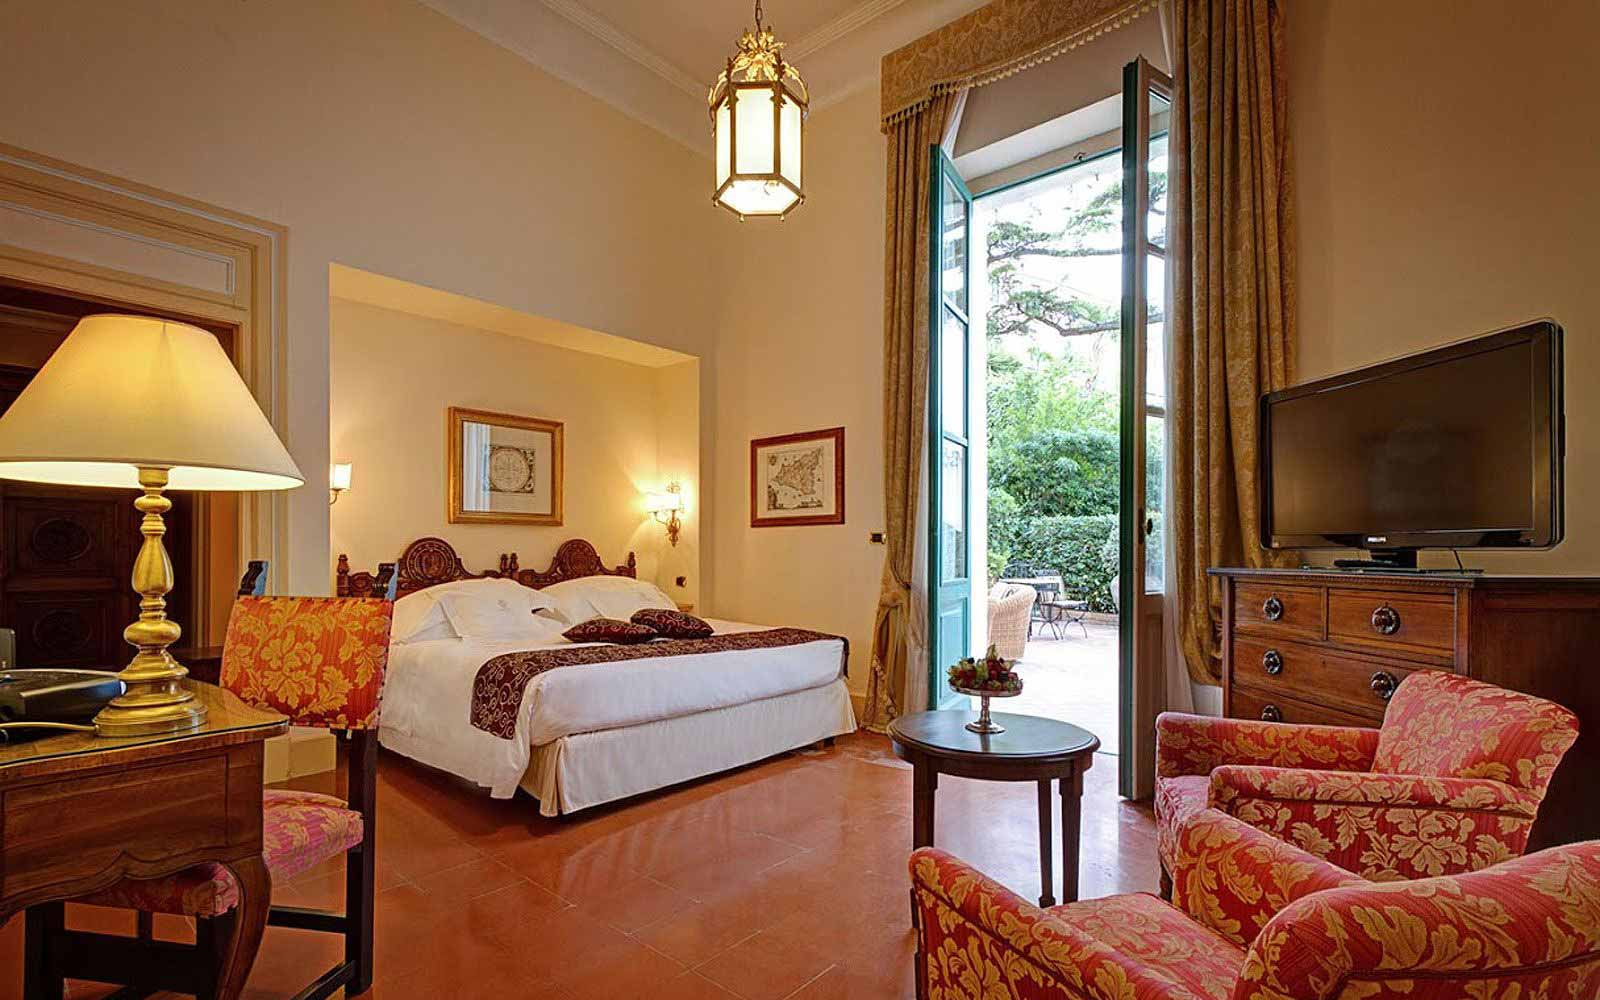 Garden suite at San Domenico Palace Hotel